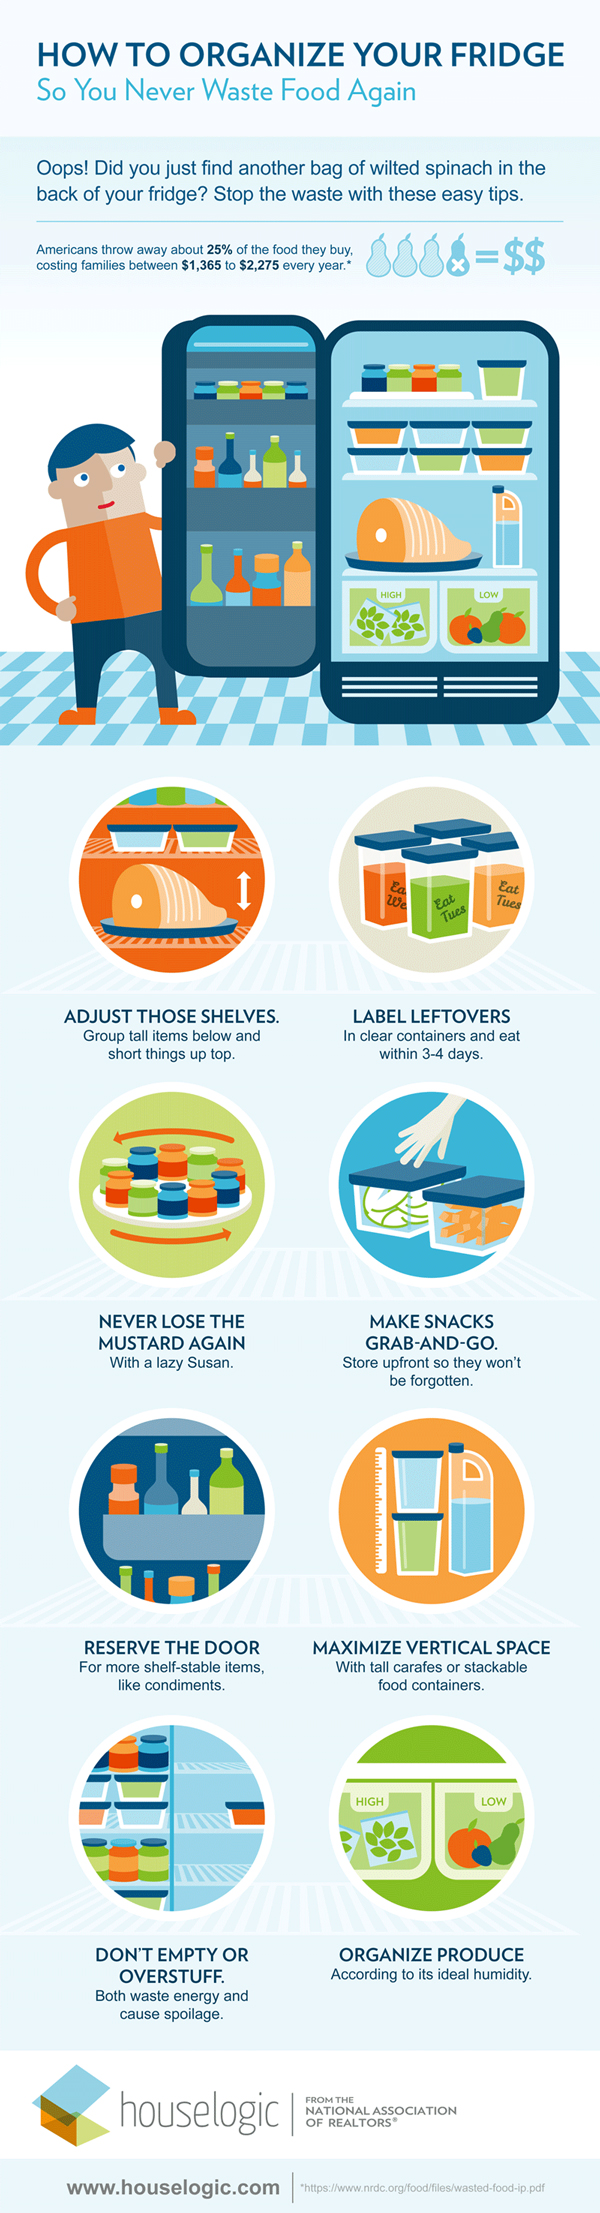 Fridge organization infographic